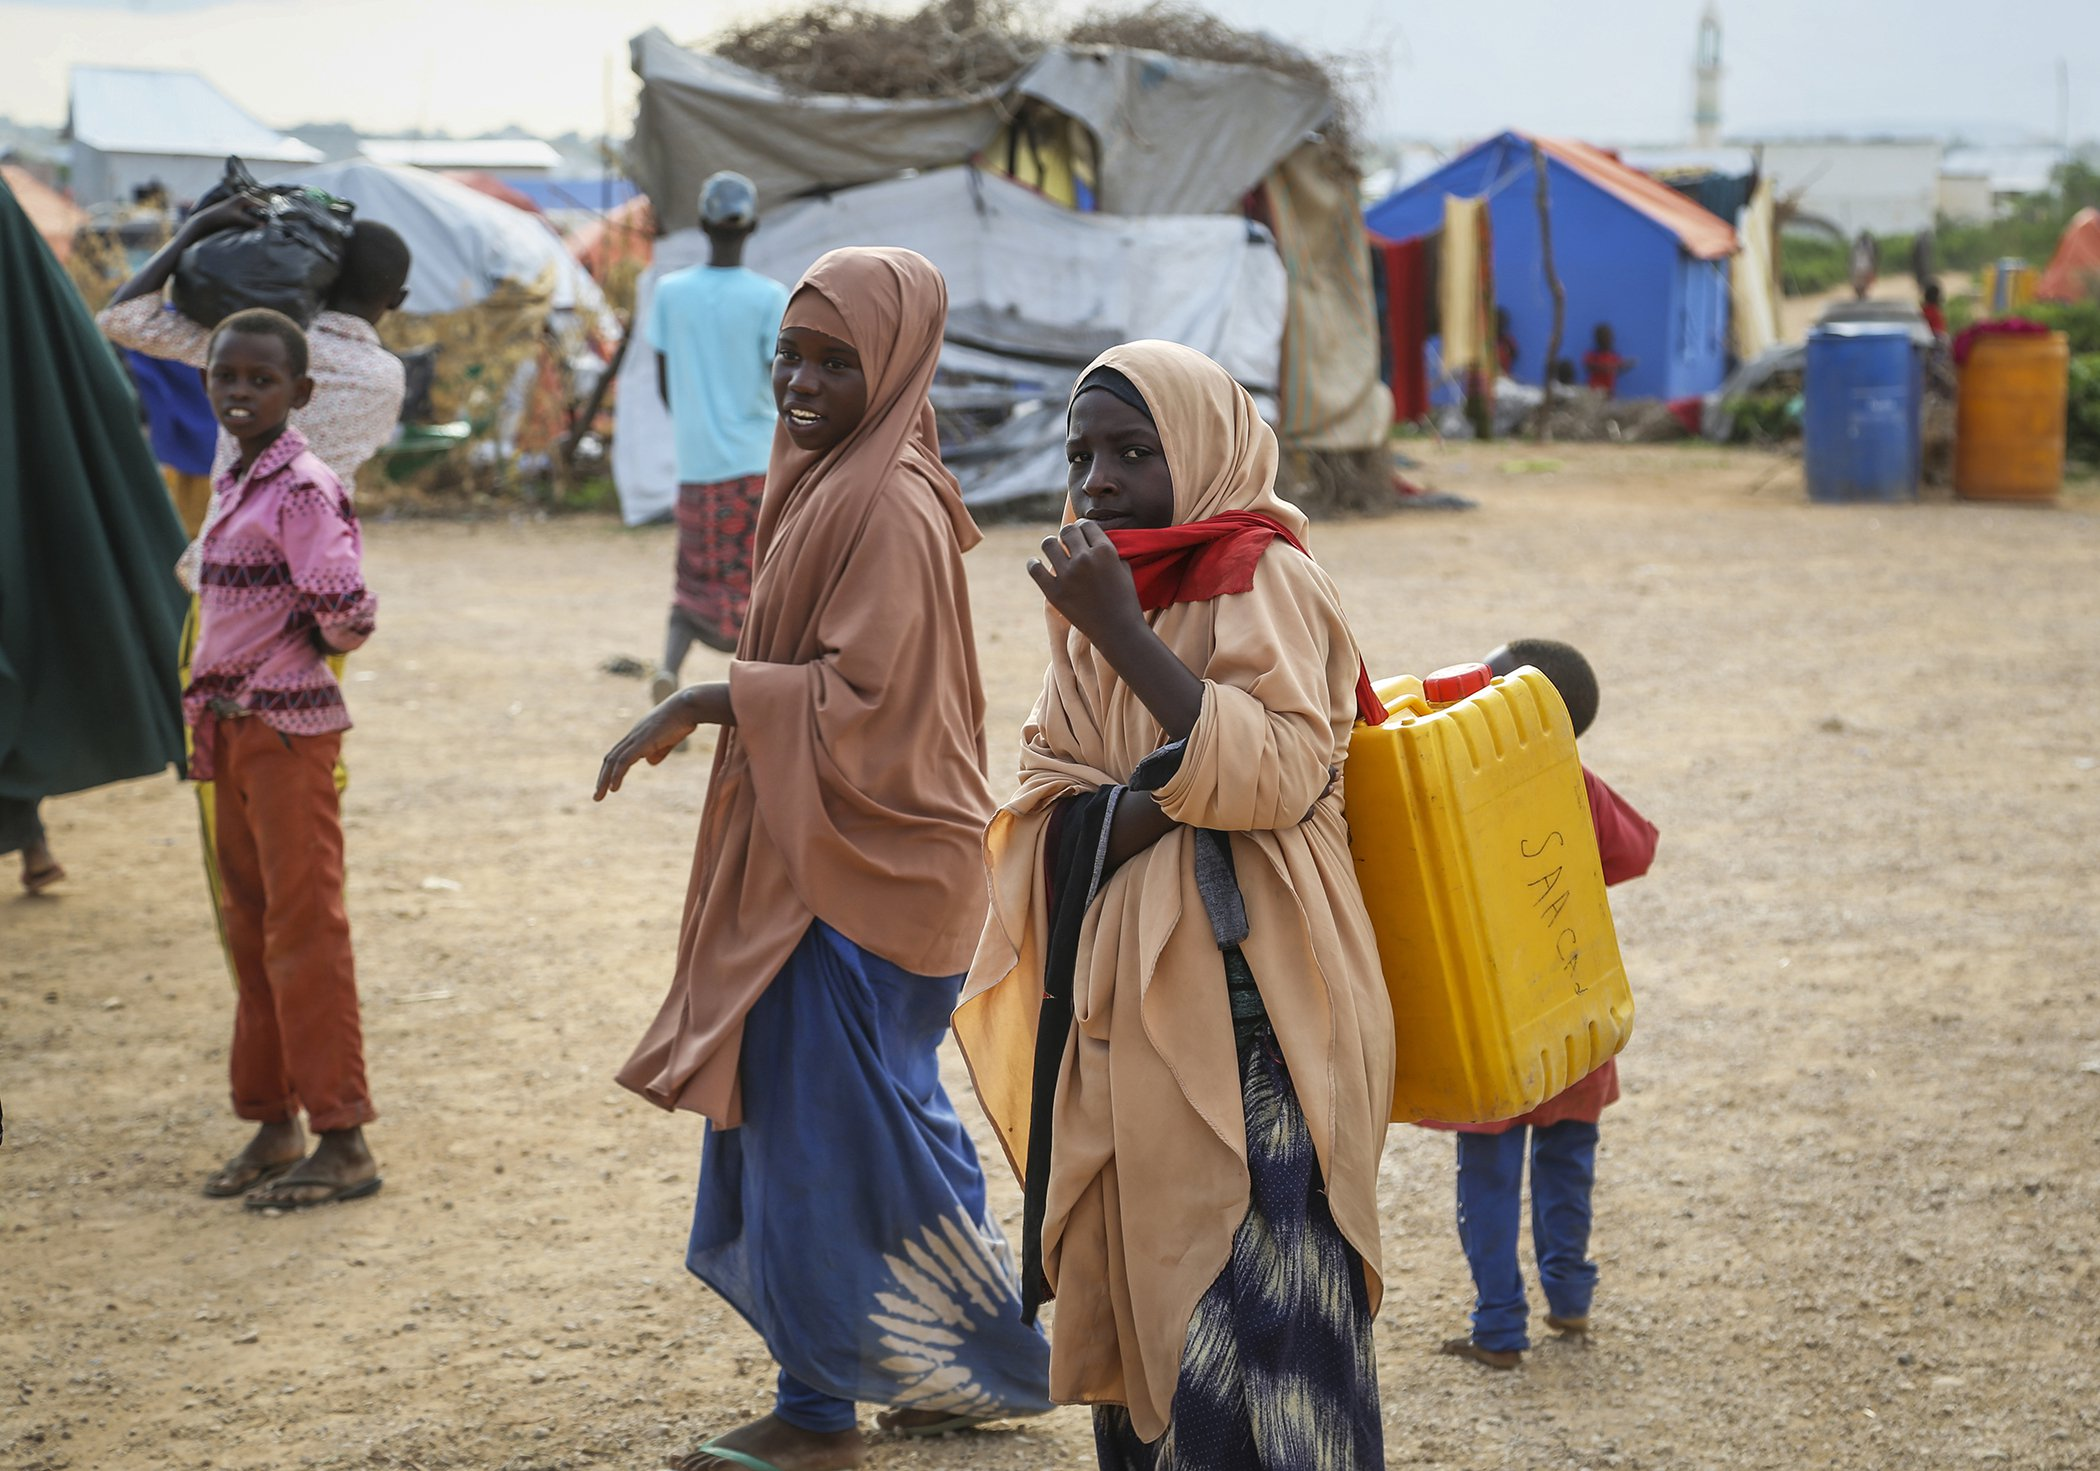 UN-Climate-Report-2019-Displaced-Somalia-Flooding.jpg